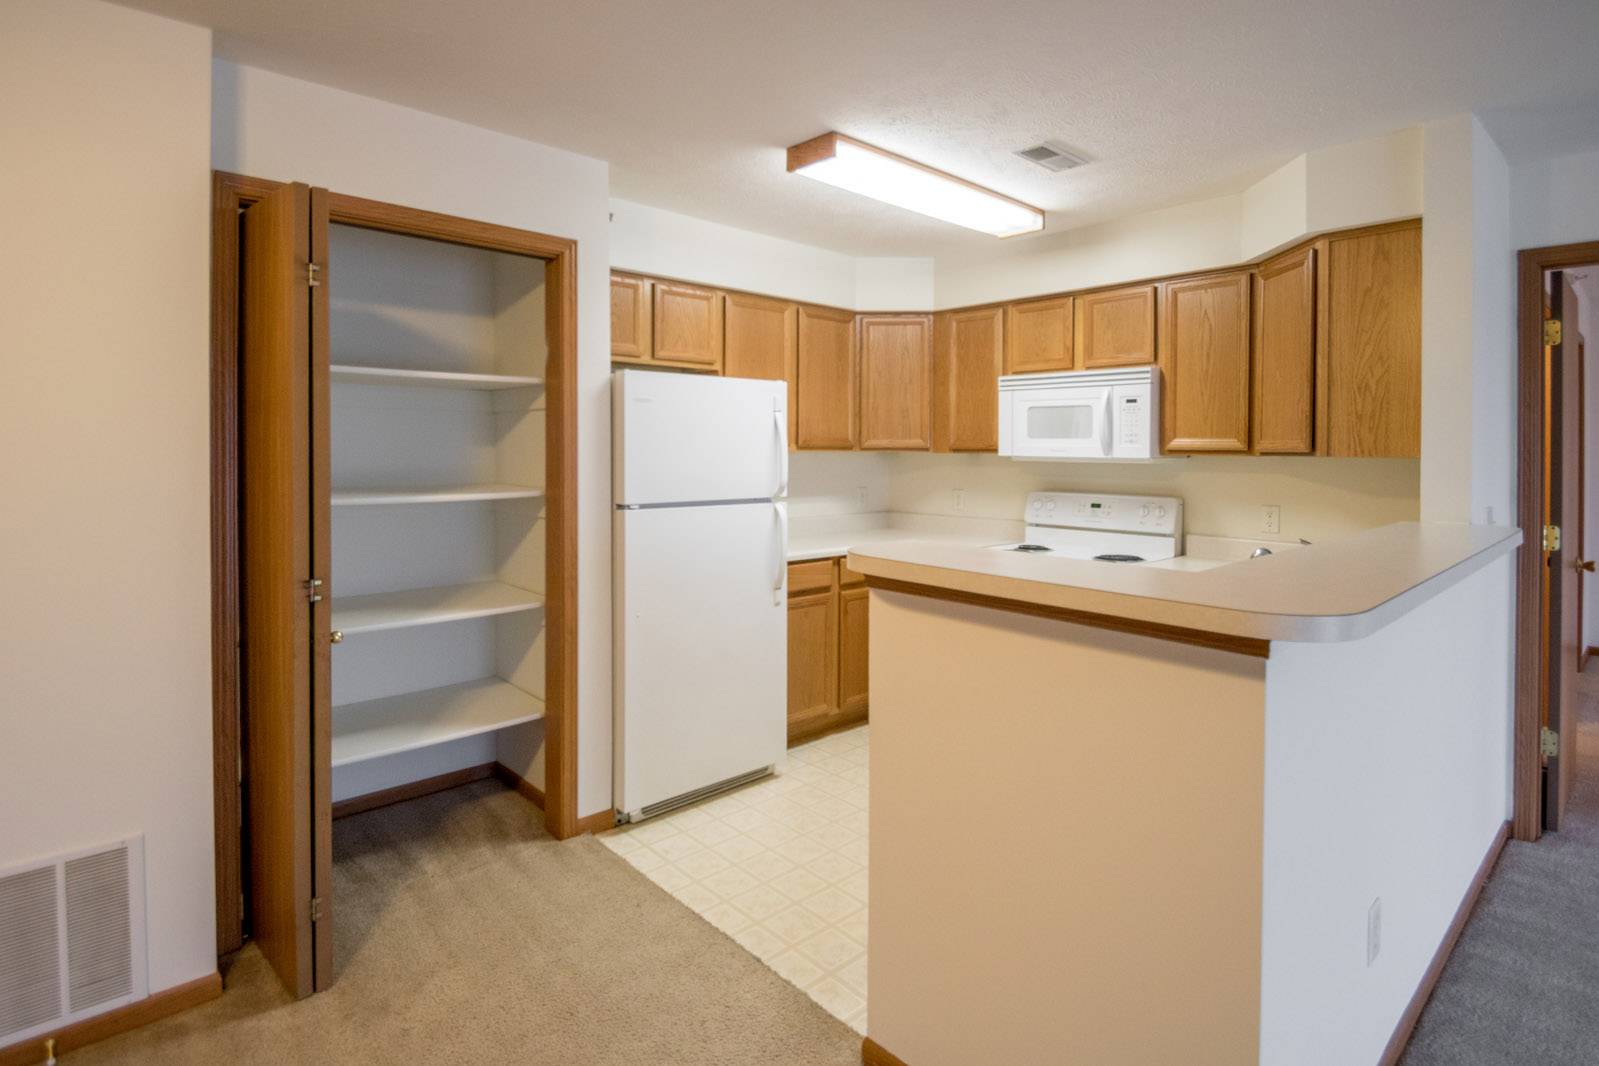 Kitchen Pantry at Northridge Apartments in Gretna, Nebraska